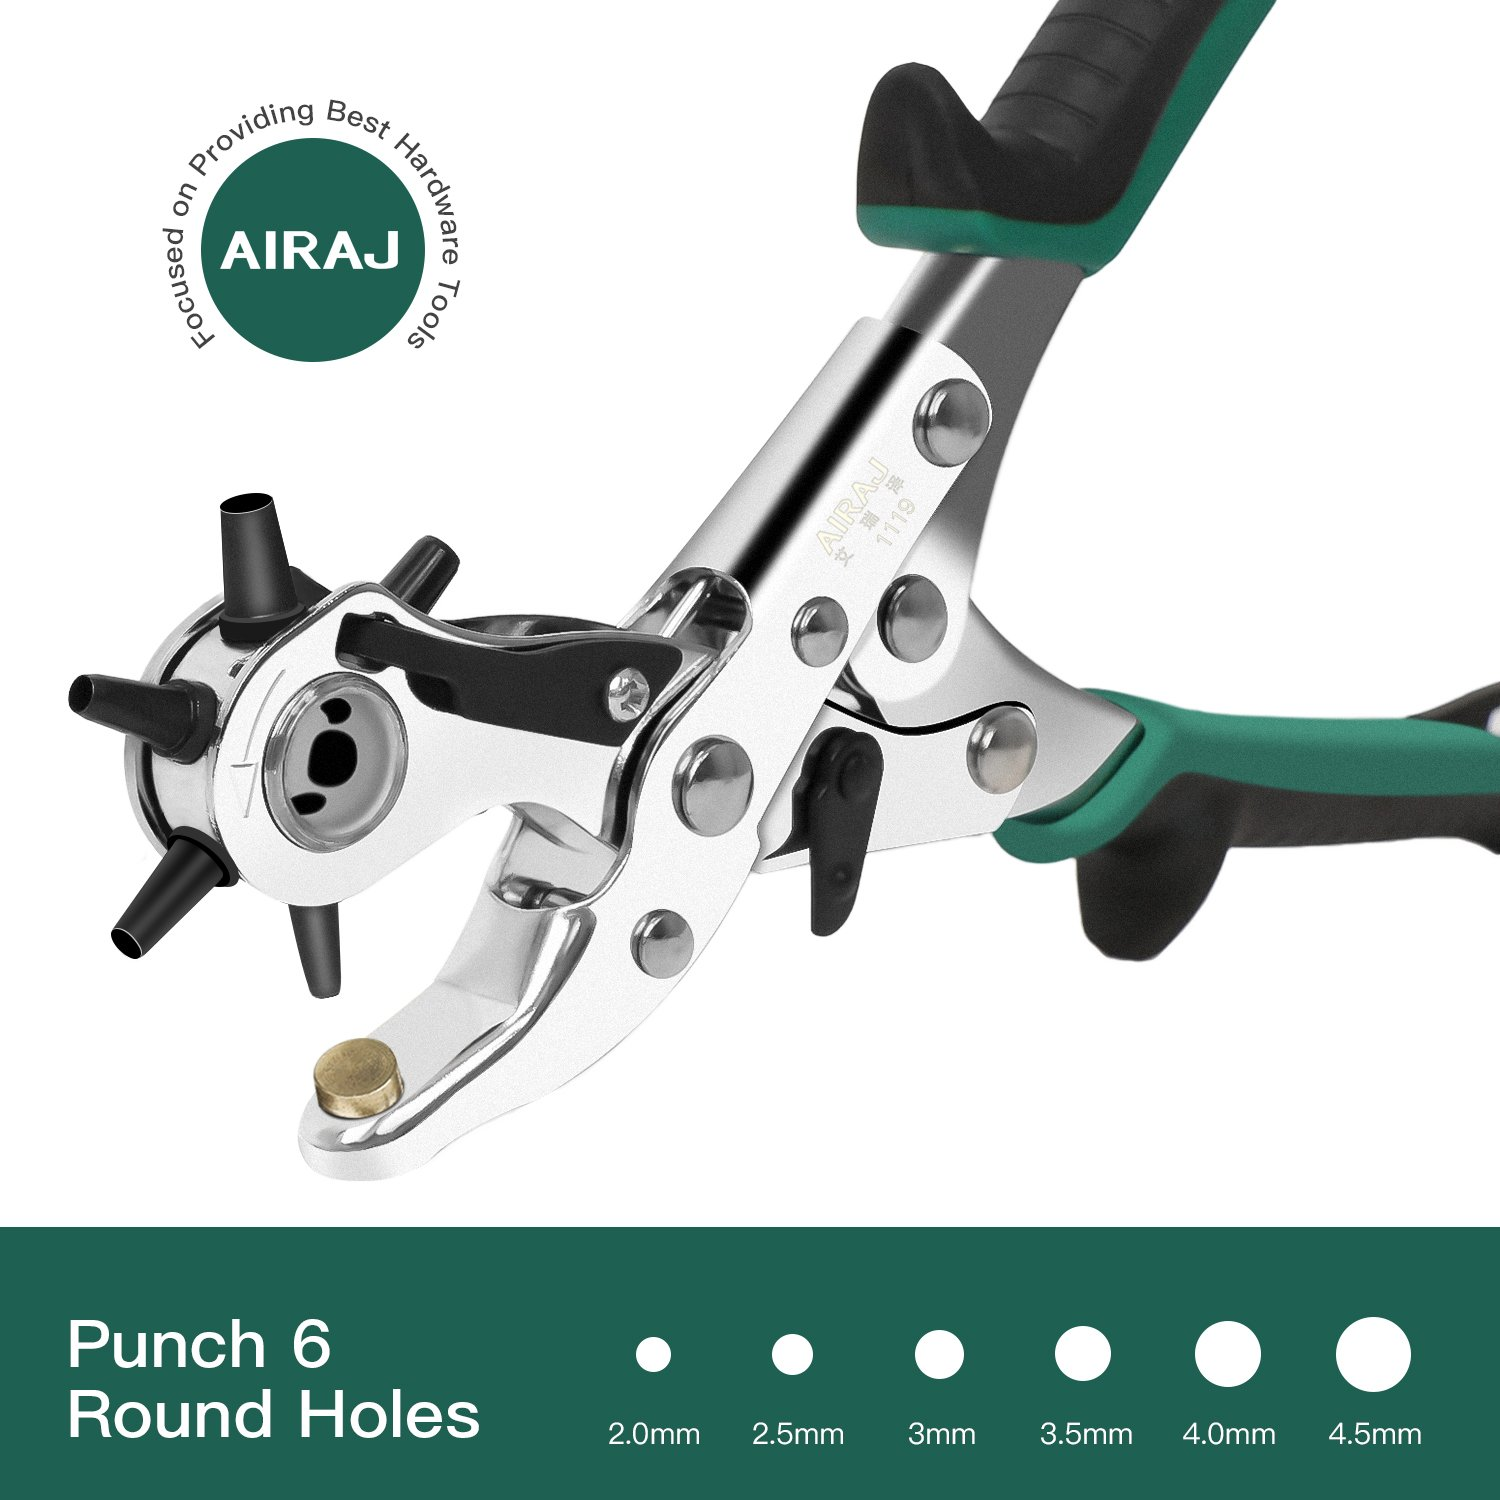 AIRAJ Punch Pliers Leather Belt Hole Punch Plier Revolving Multi Hole for Belts,Fabric,Rubber,Paper, Puncher Craft Maker Piler Tool Punch 6 Round Sizes From 5/64 Inch to 3/16 Inch by AIRAJ